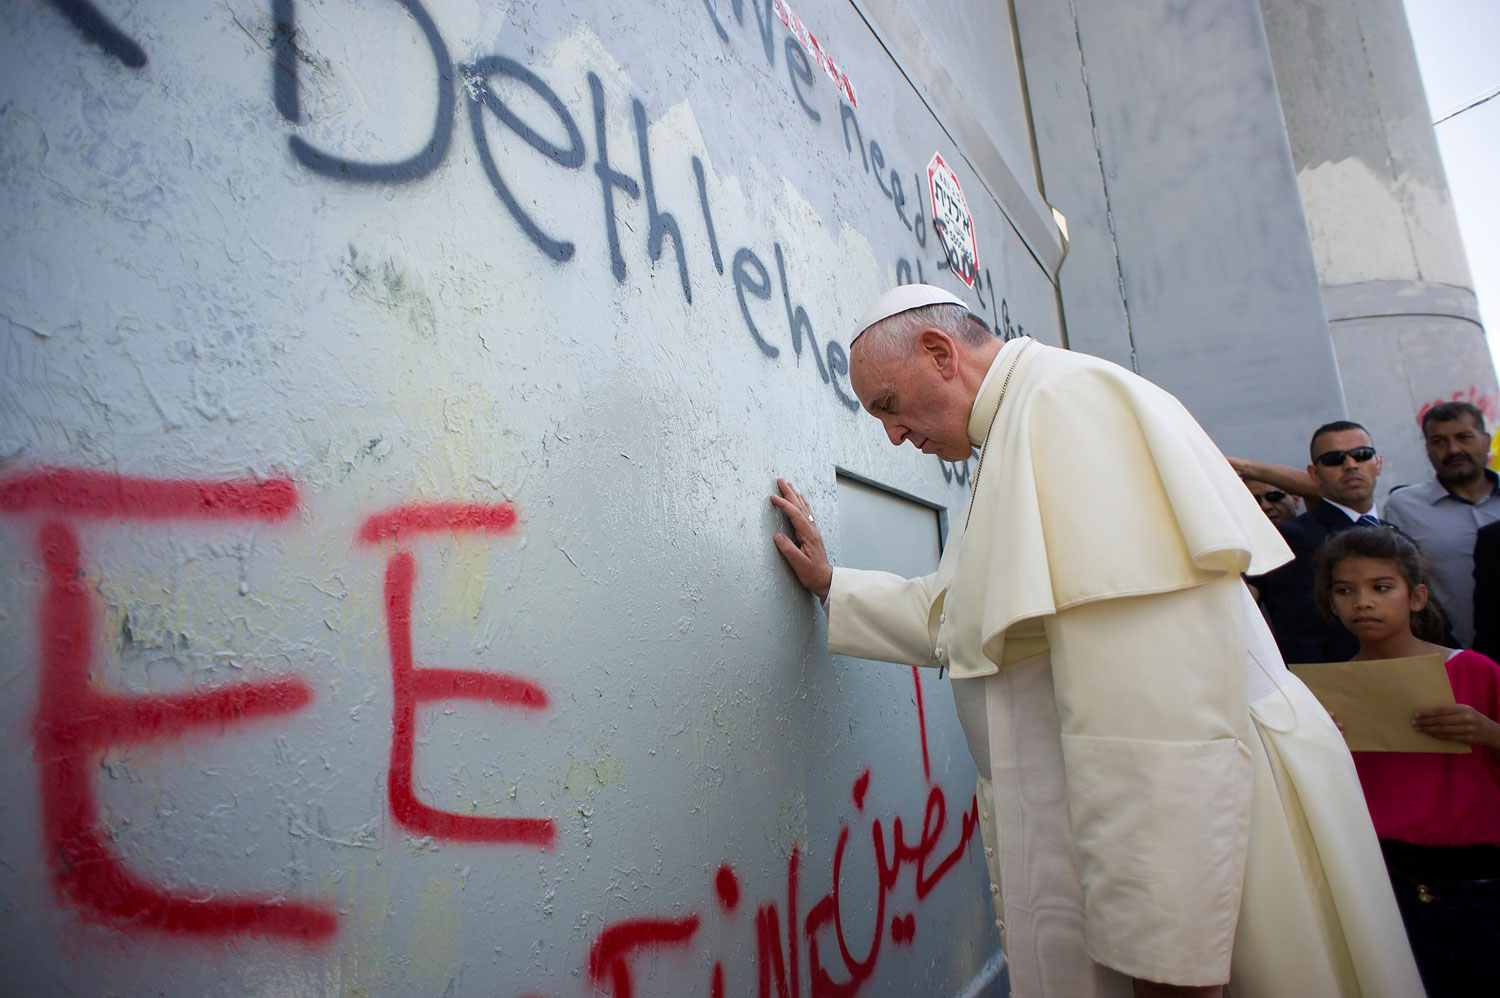 Pope Francis touches the wall that divides Israel from the West Bank, on his way to celebrate a mass in Manger Square, in the West Bank city of Bethlehem on May 25, 2014